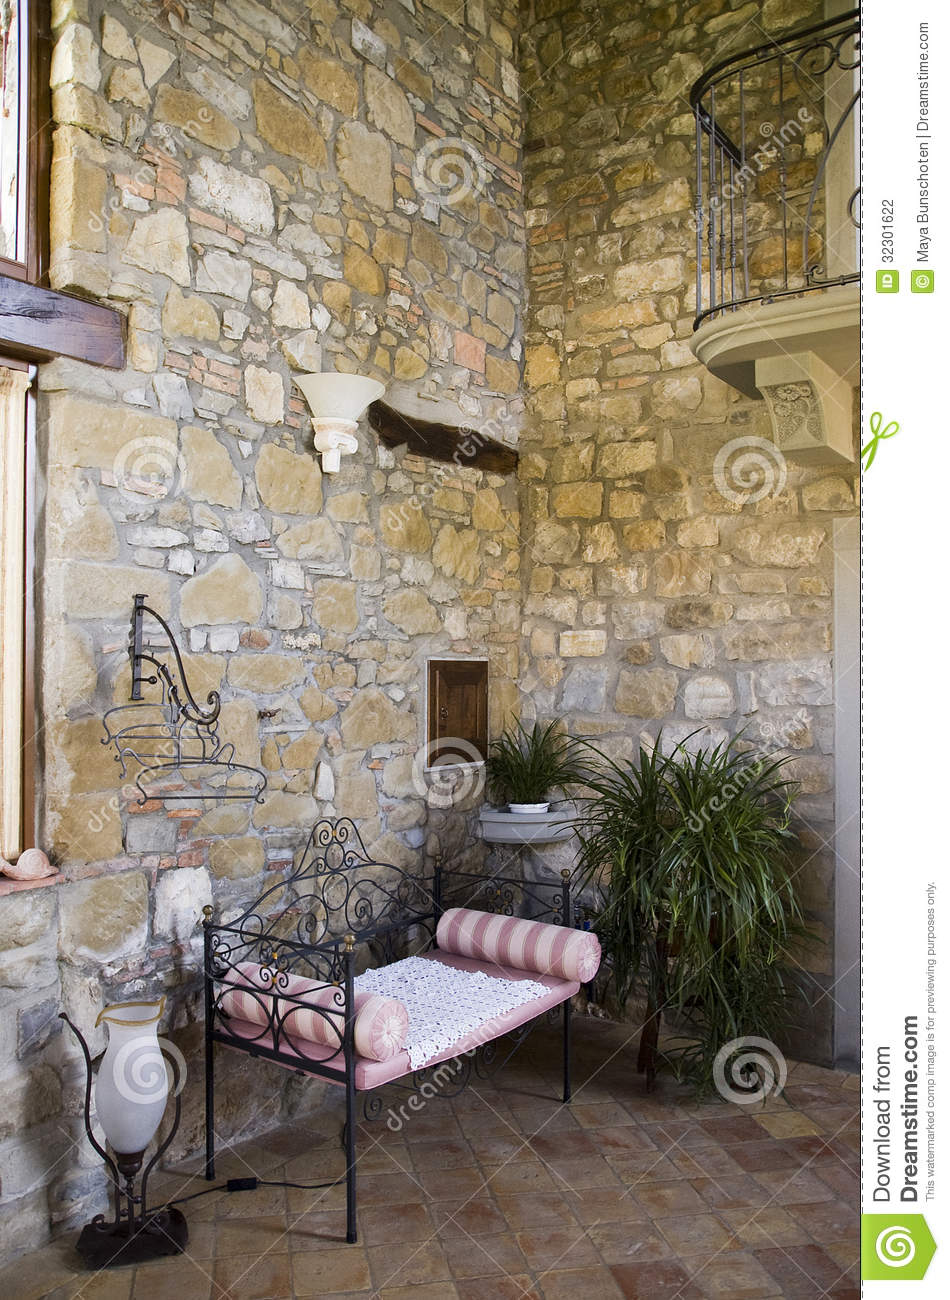 Rustic Interior Of An Italian House Stock Photo Image